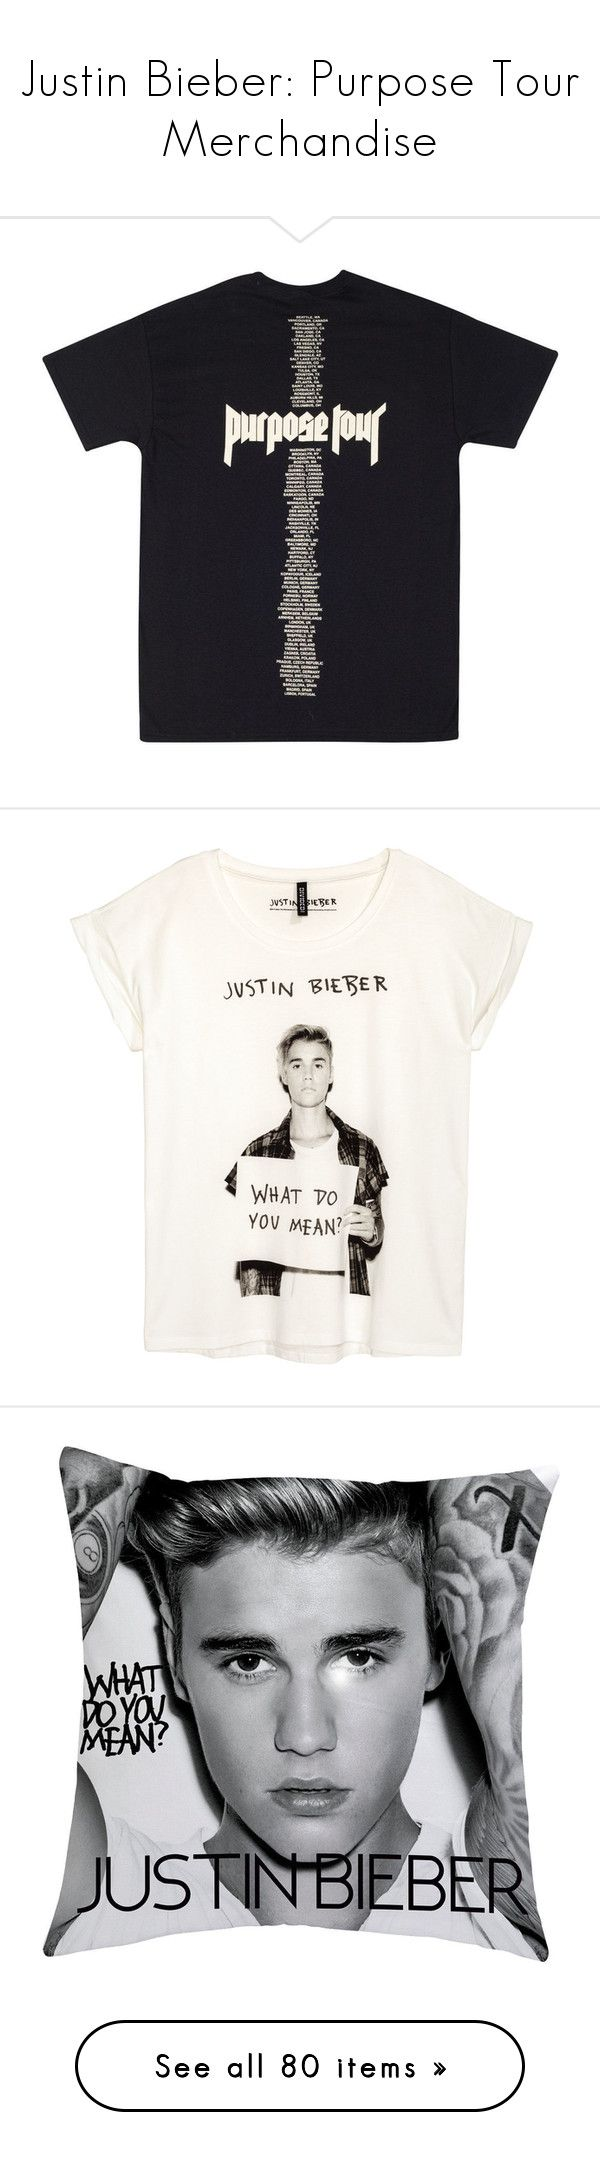 """Justin Bieber: Purpose Tour Merchandise"" by eri-johana ❤ liked on Polyvore featuring tops, t-shirts, short sleeve tops, pattern t shirt, short sleeve t shirts, white t shirt, white jersey t shirt, men's fashion, men's accessories and men's hats"